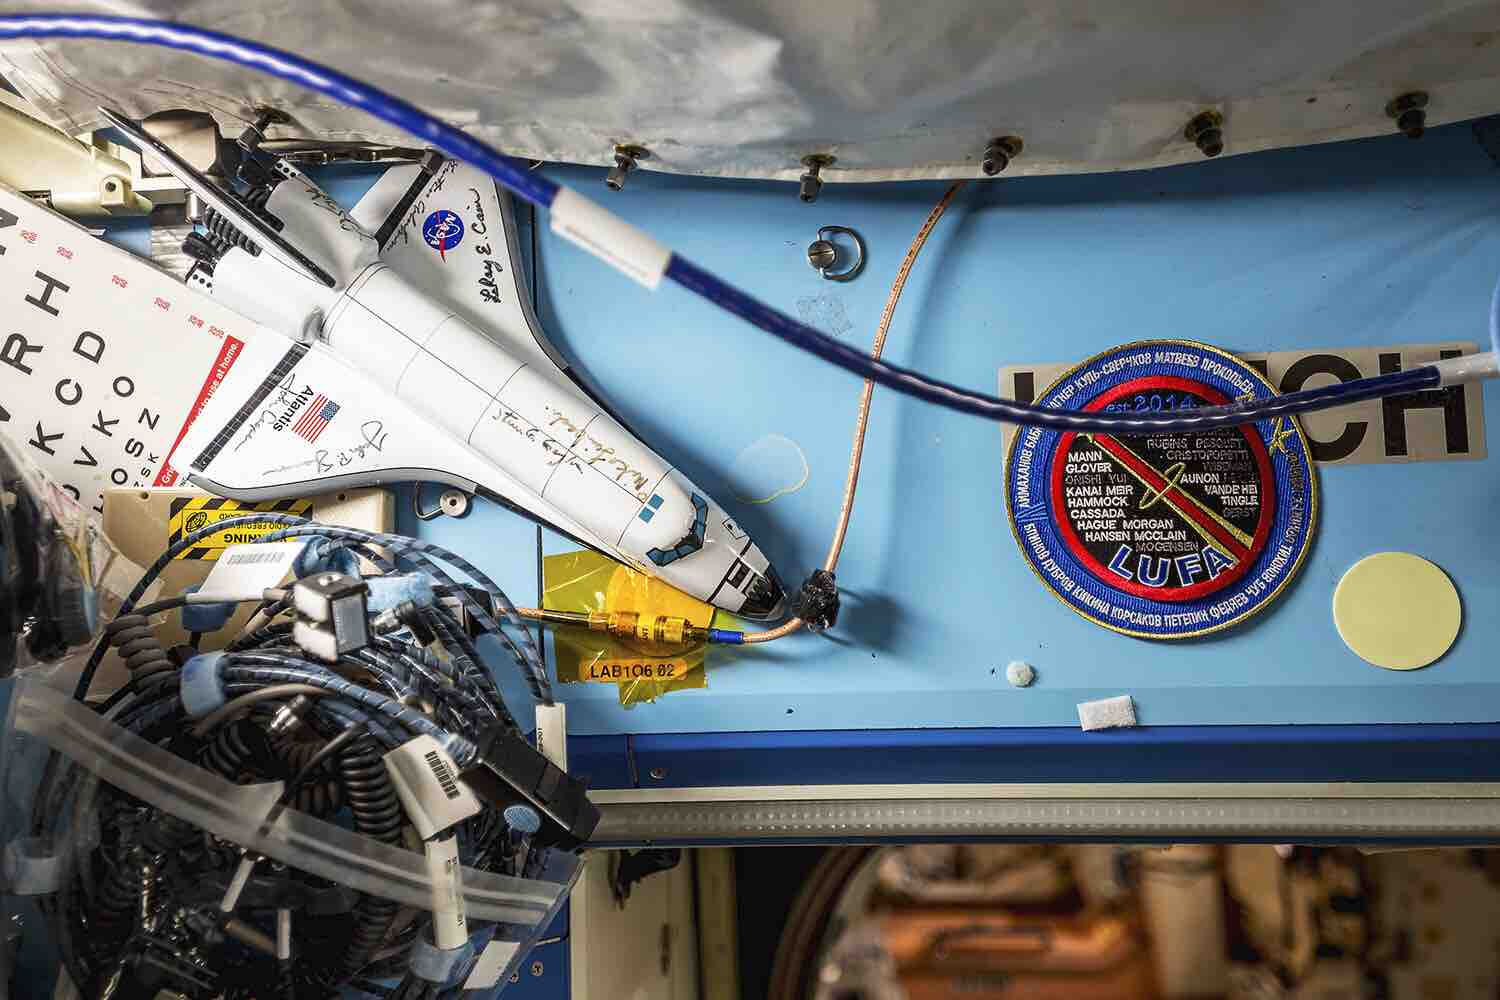 interior-space-by-roland-miller-and-paolo-nespoli-5